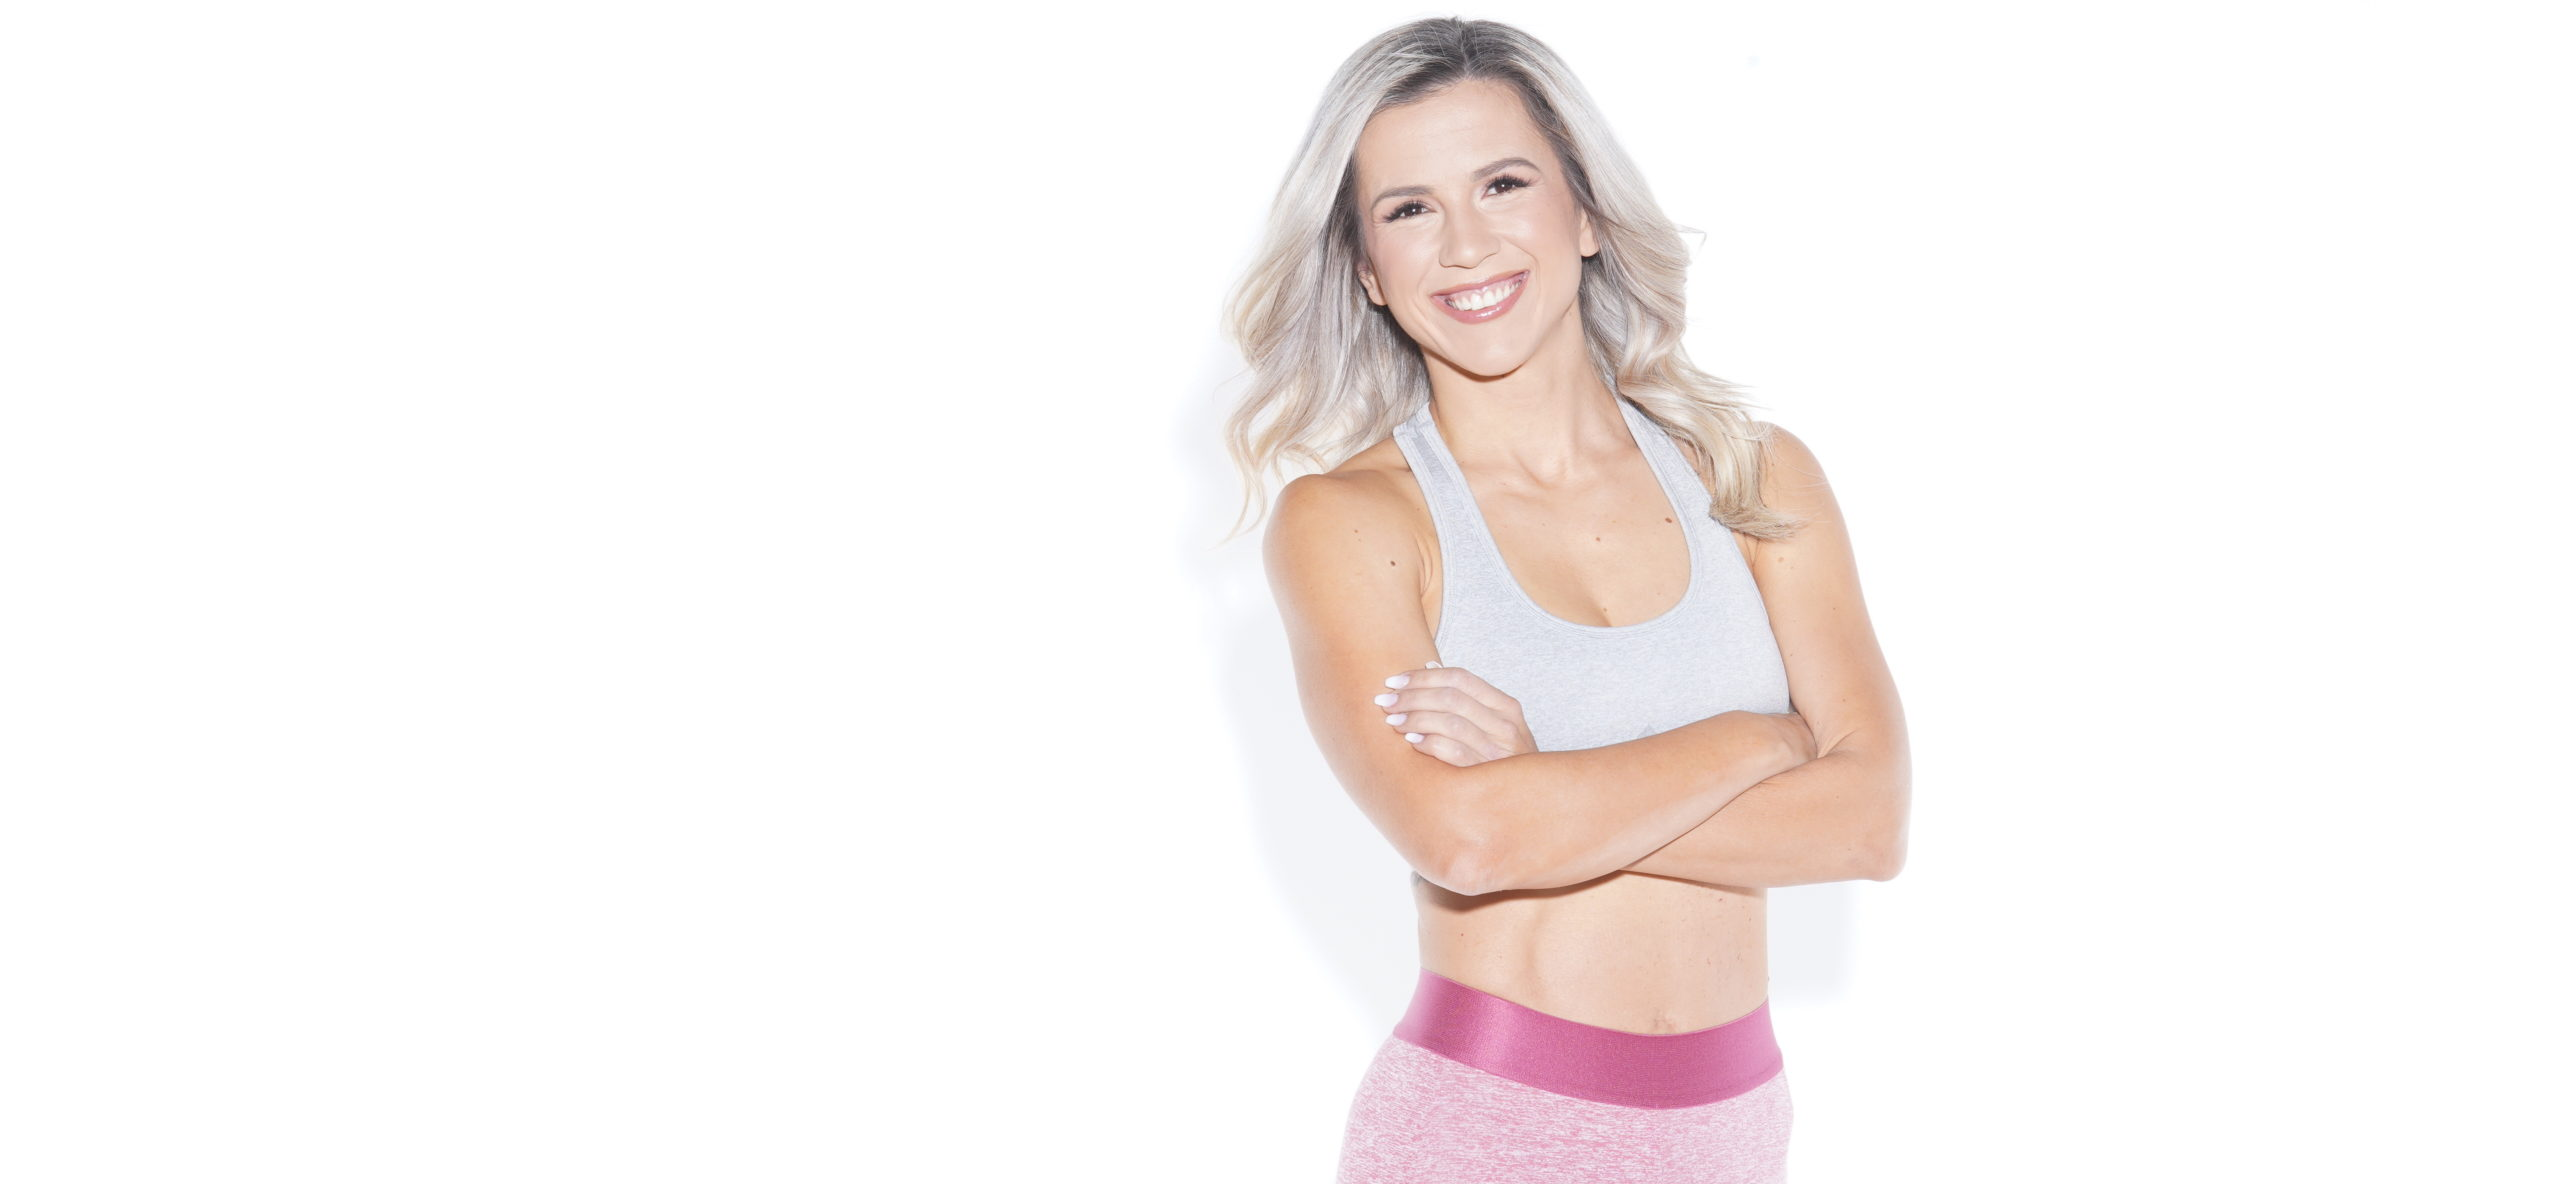 FREE WEBINAR: The Fit Mom Master Class